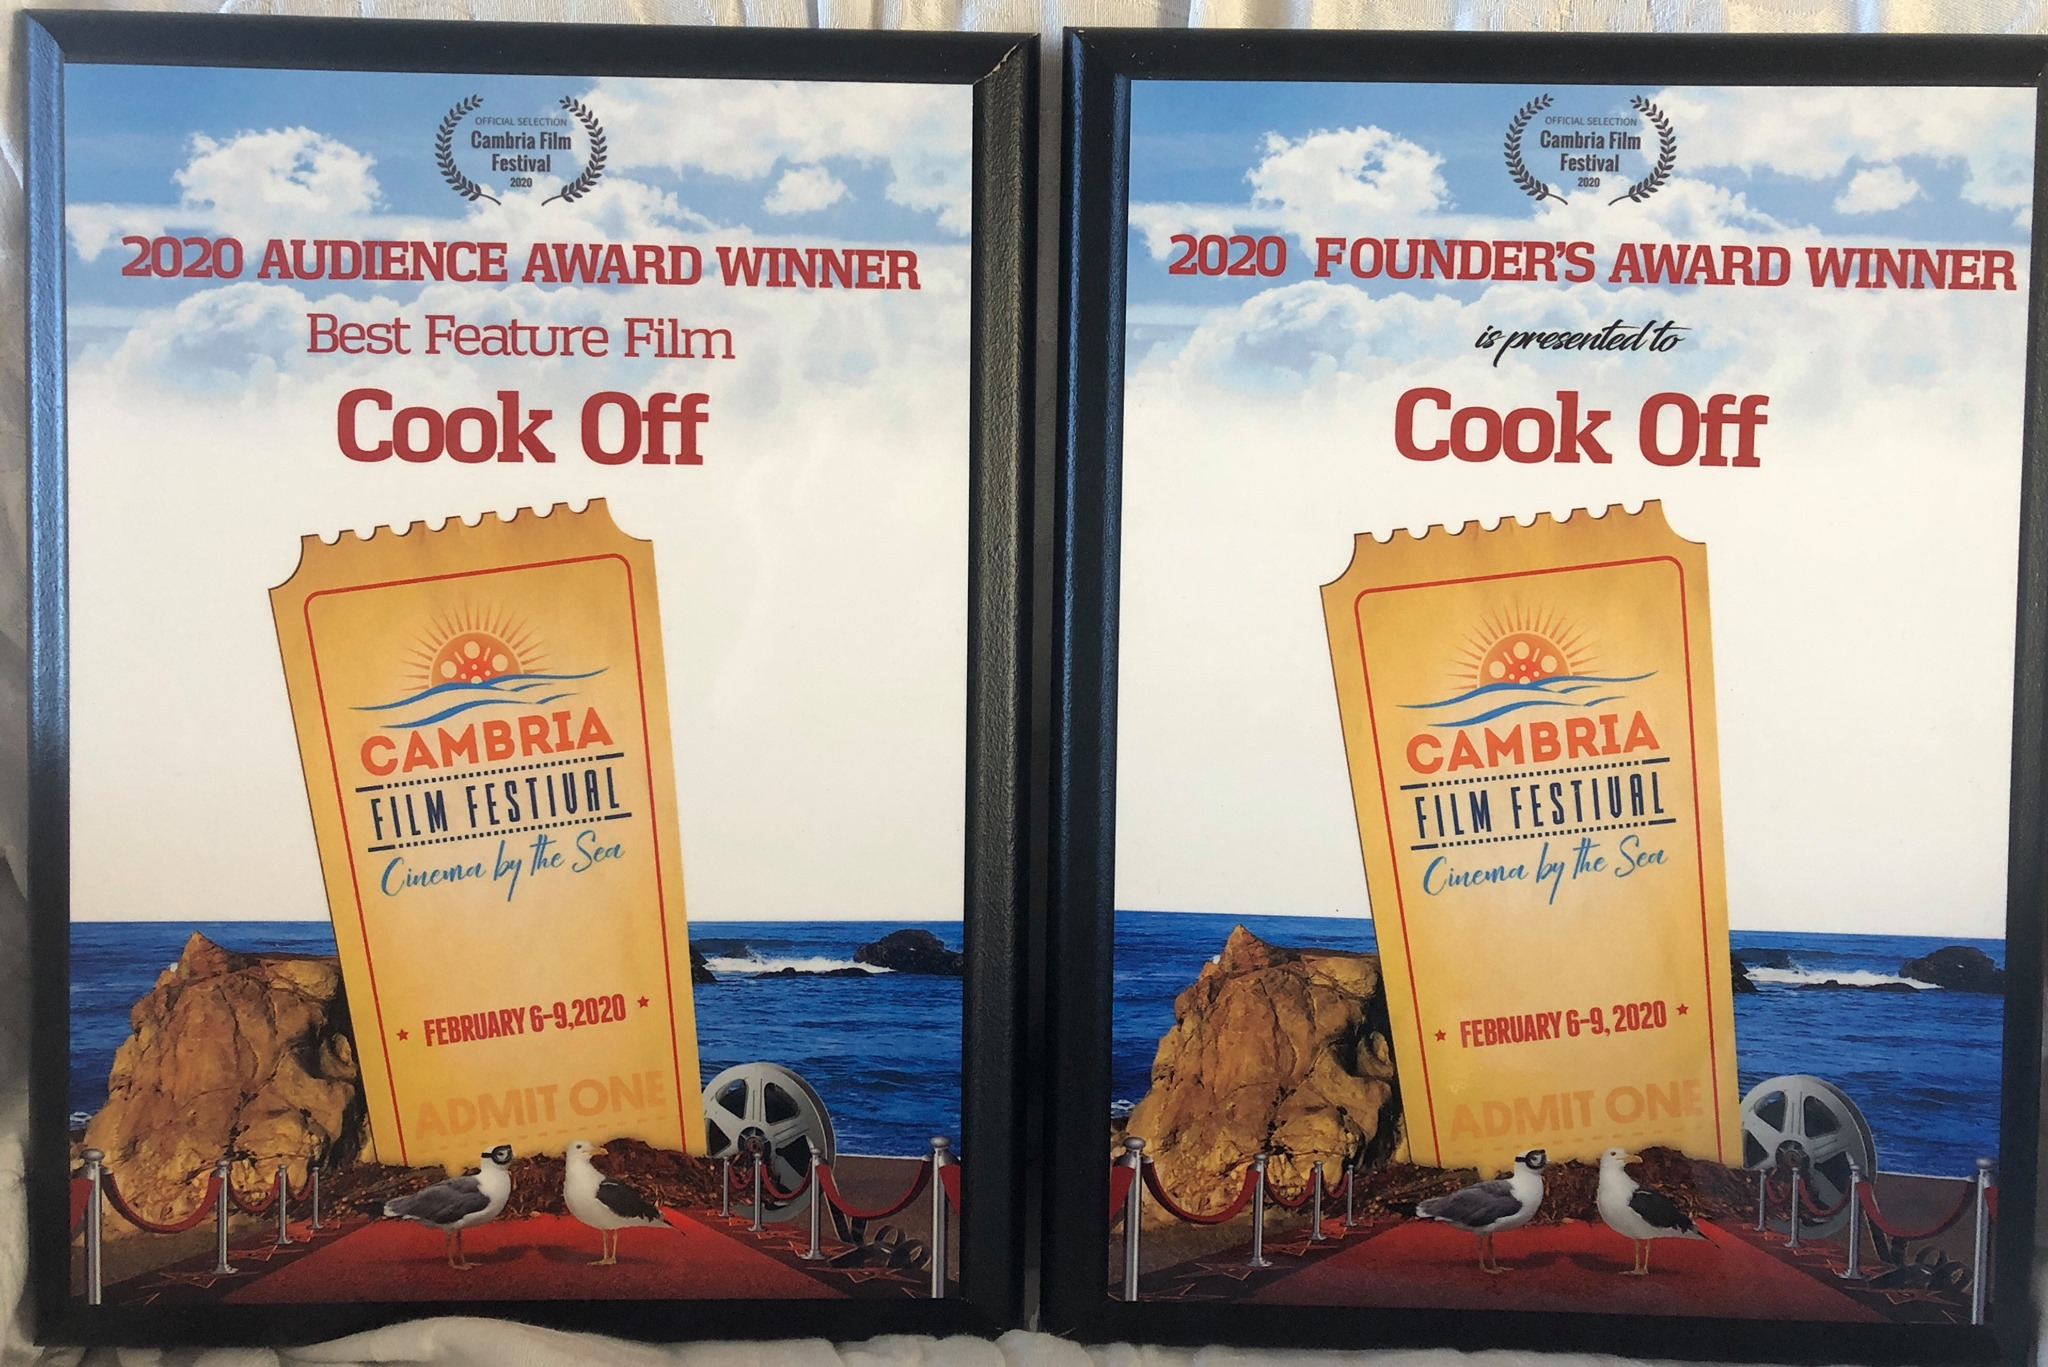 Cook Off Wins at Cambria Film Festival